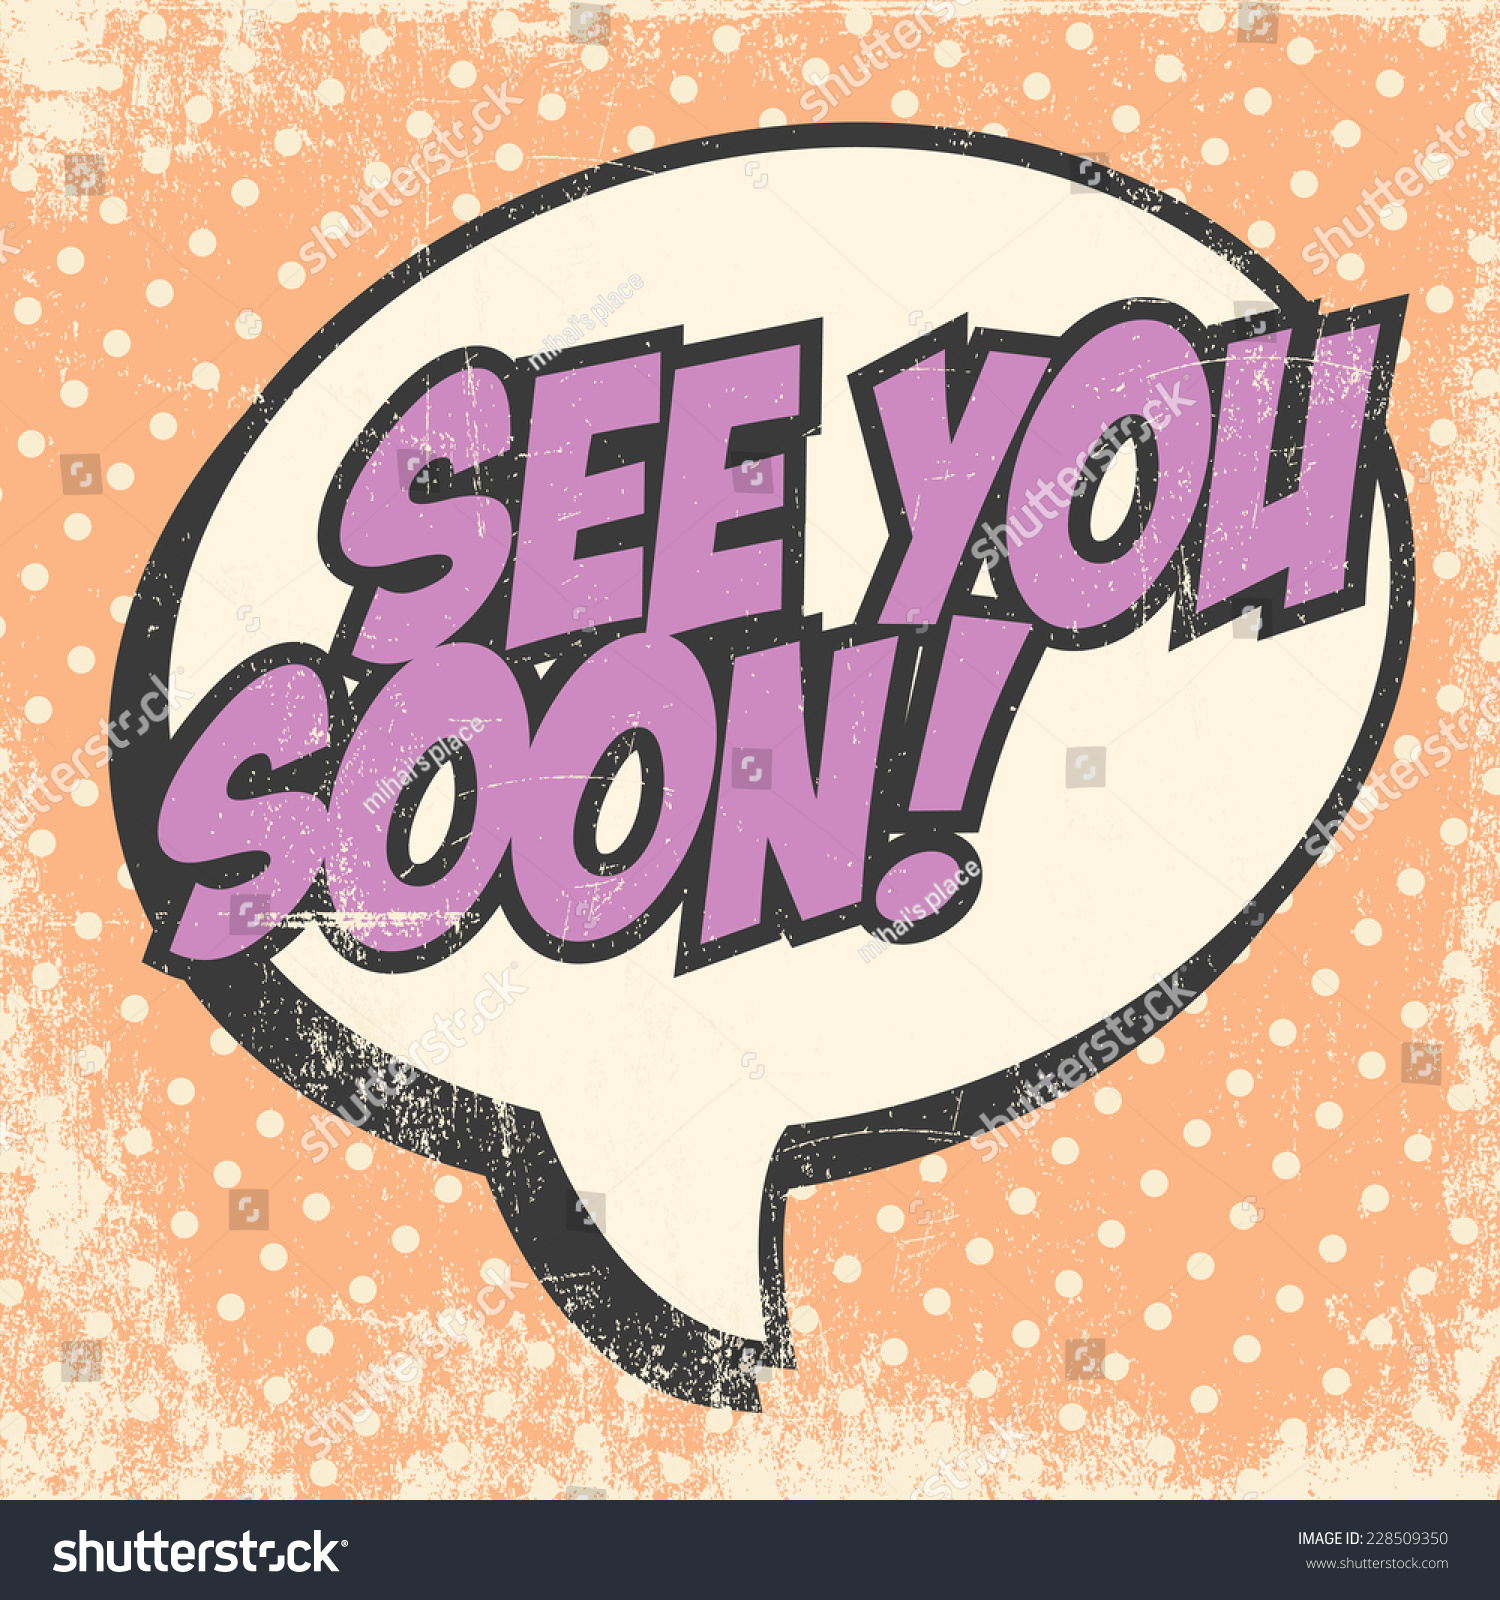 See You Soon Illustration Vector Format Stock Vector